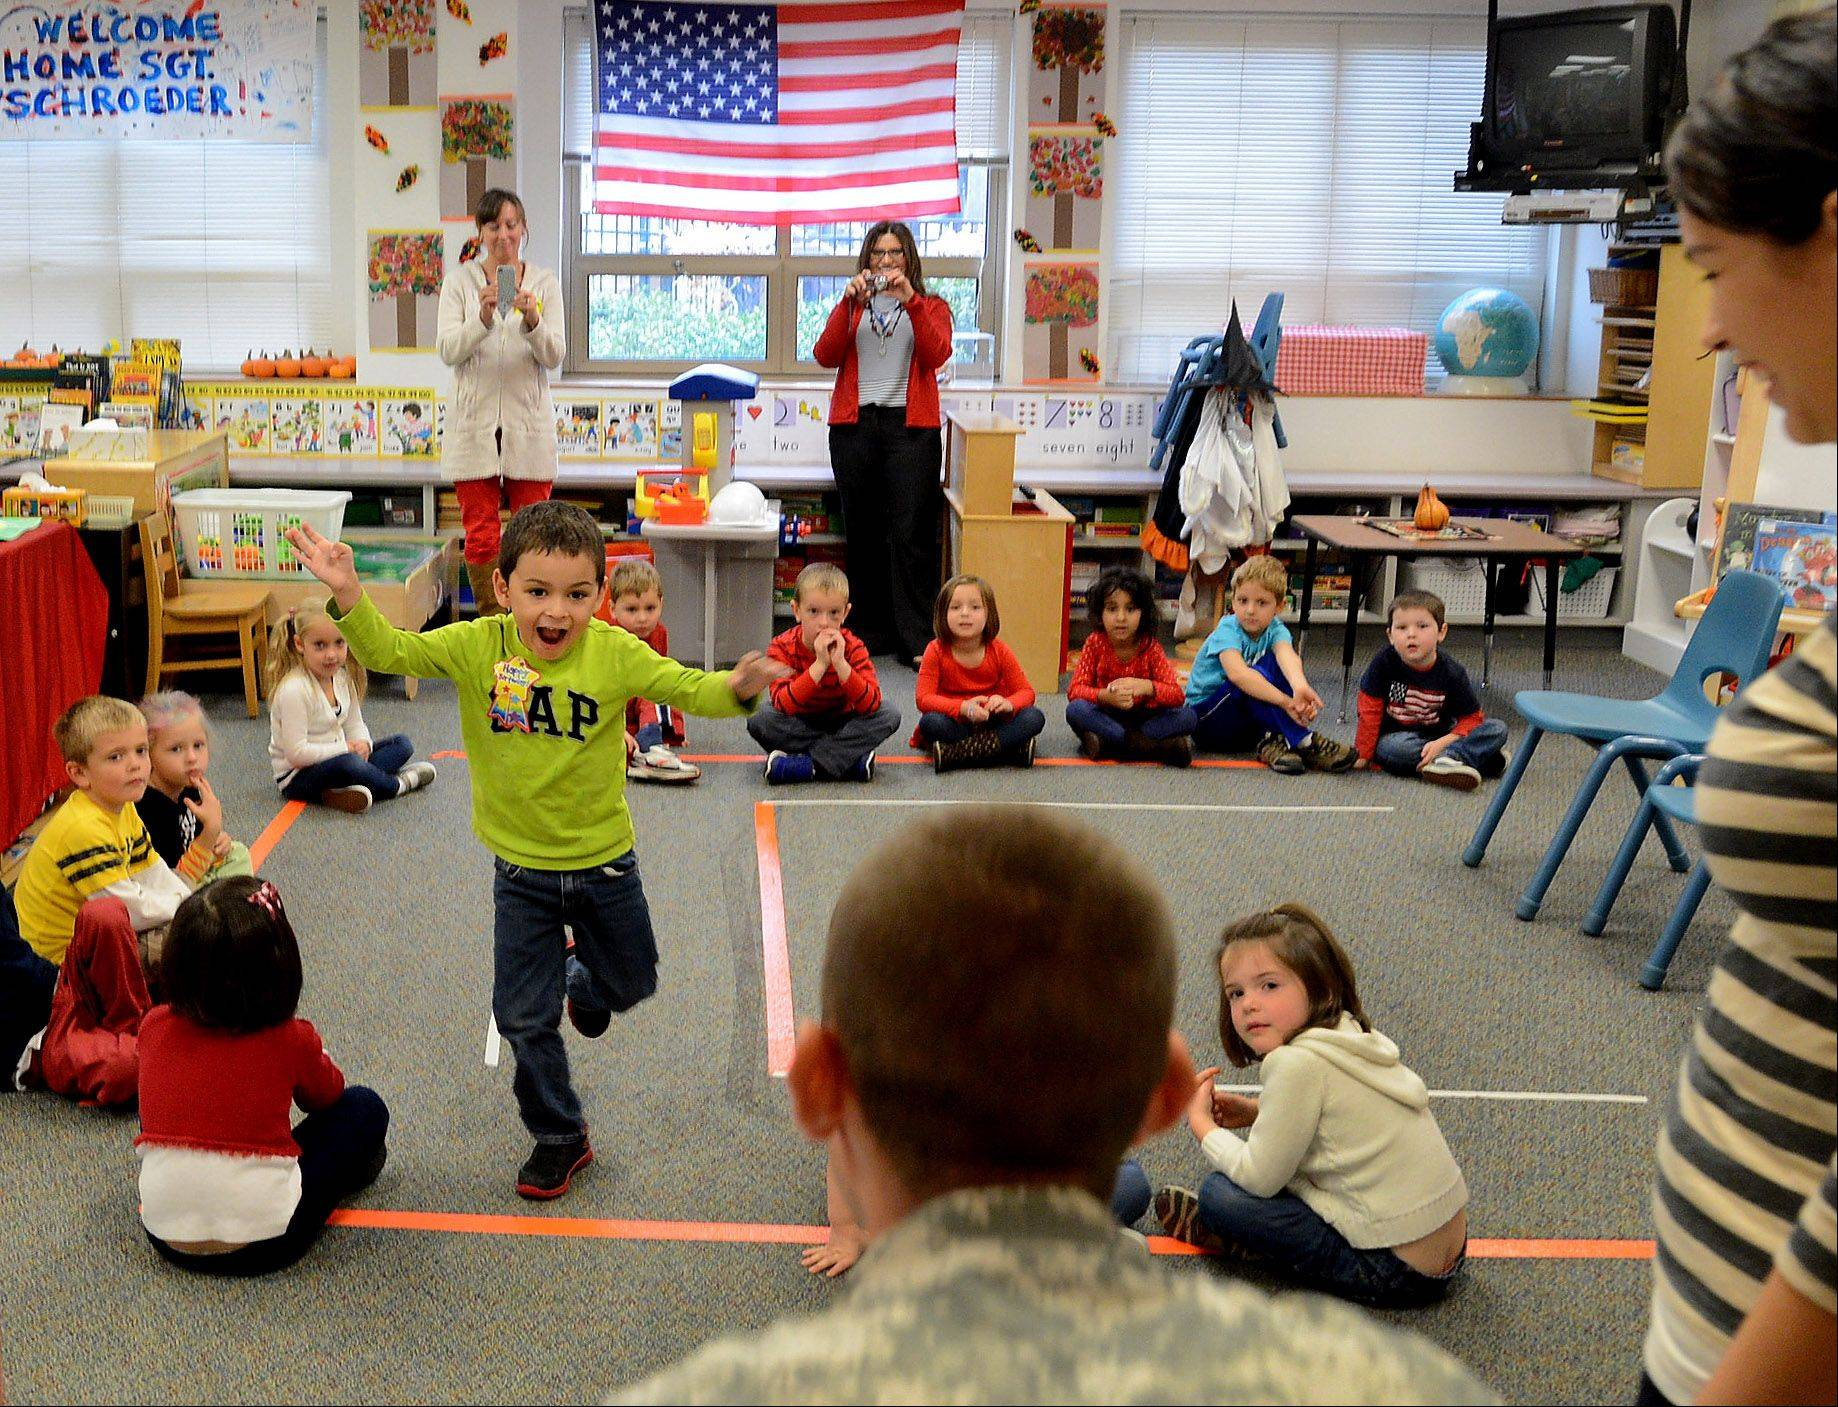 William Schroeder rushes to give his father, U.S. Army Sgt. Robert Schroeder of Lake Barrington, a hug Wednesday in his pre-Kindergarten classroom at St. Anne School in Barrington.